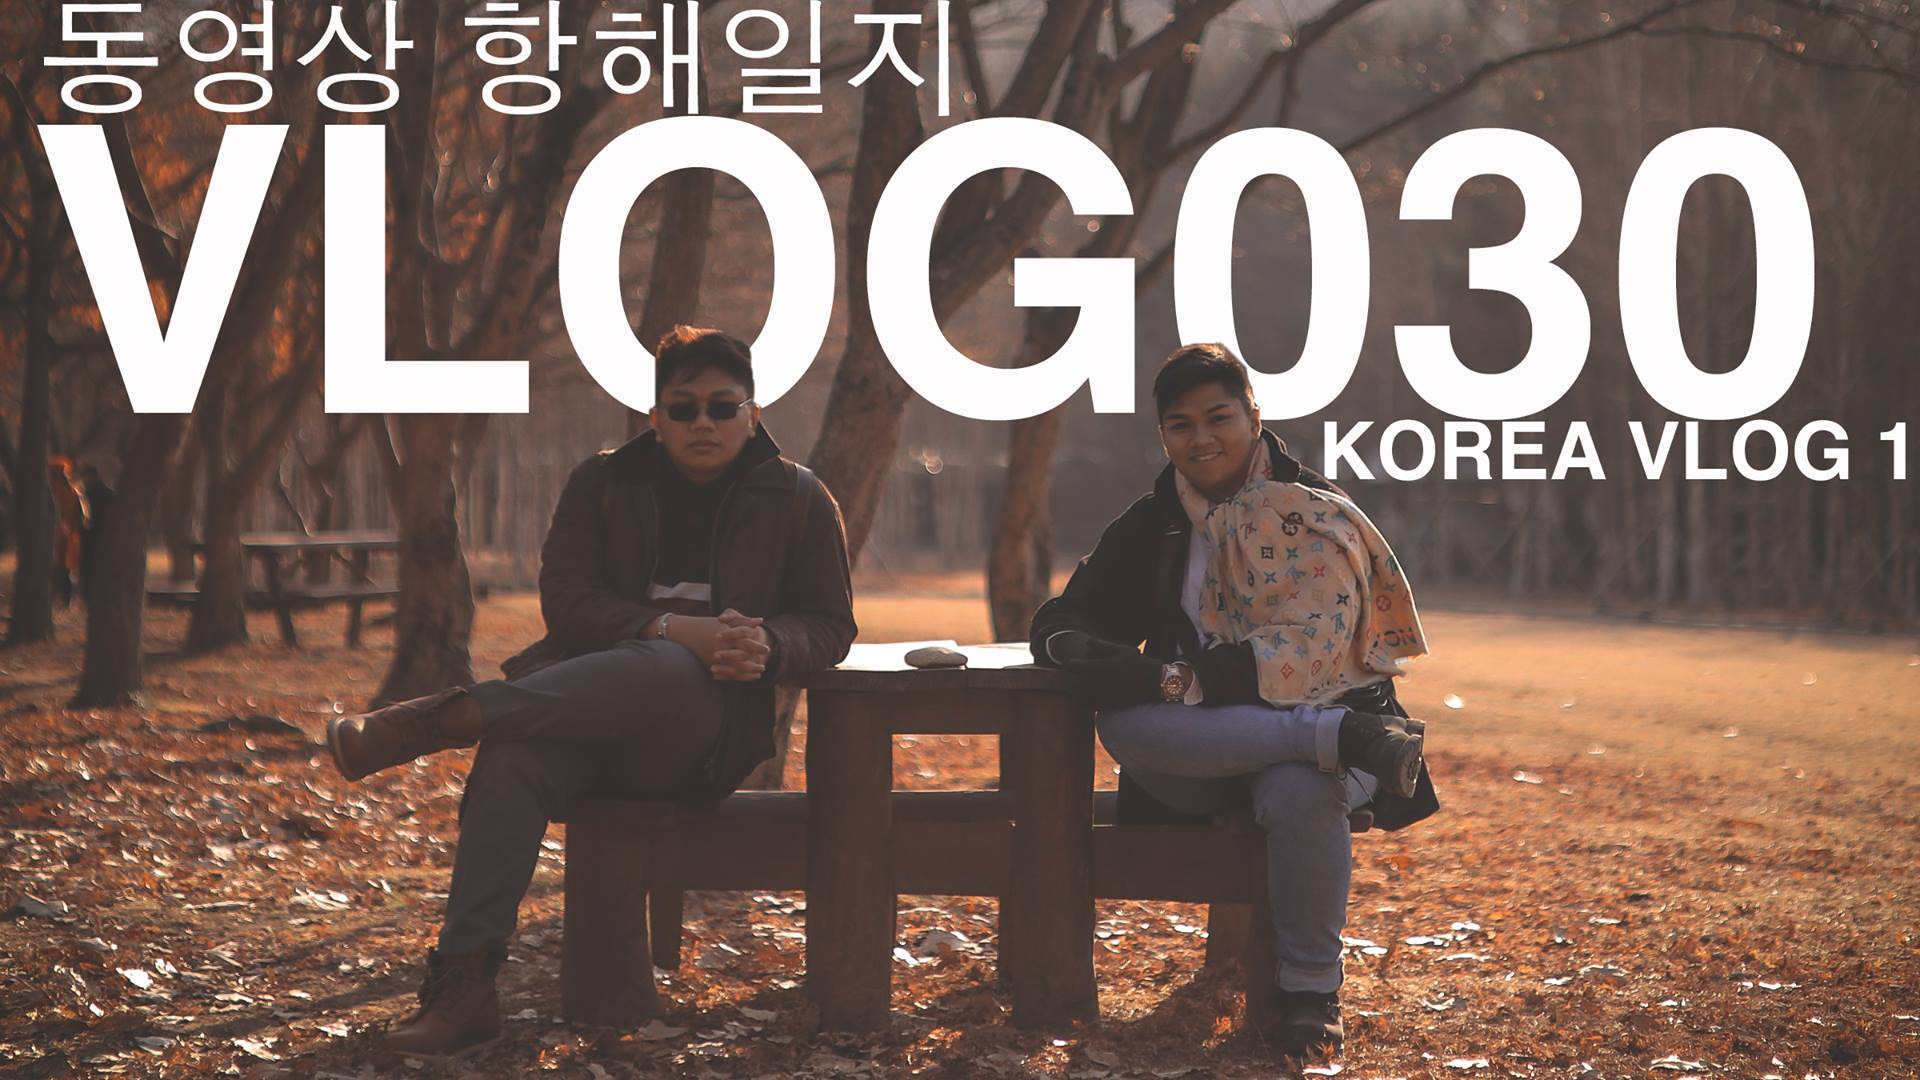 VLOG030: CHRISTMAS IN KOREA (DAY 1) | KOREA VLOG SERIES